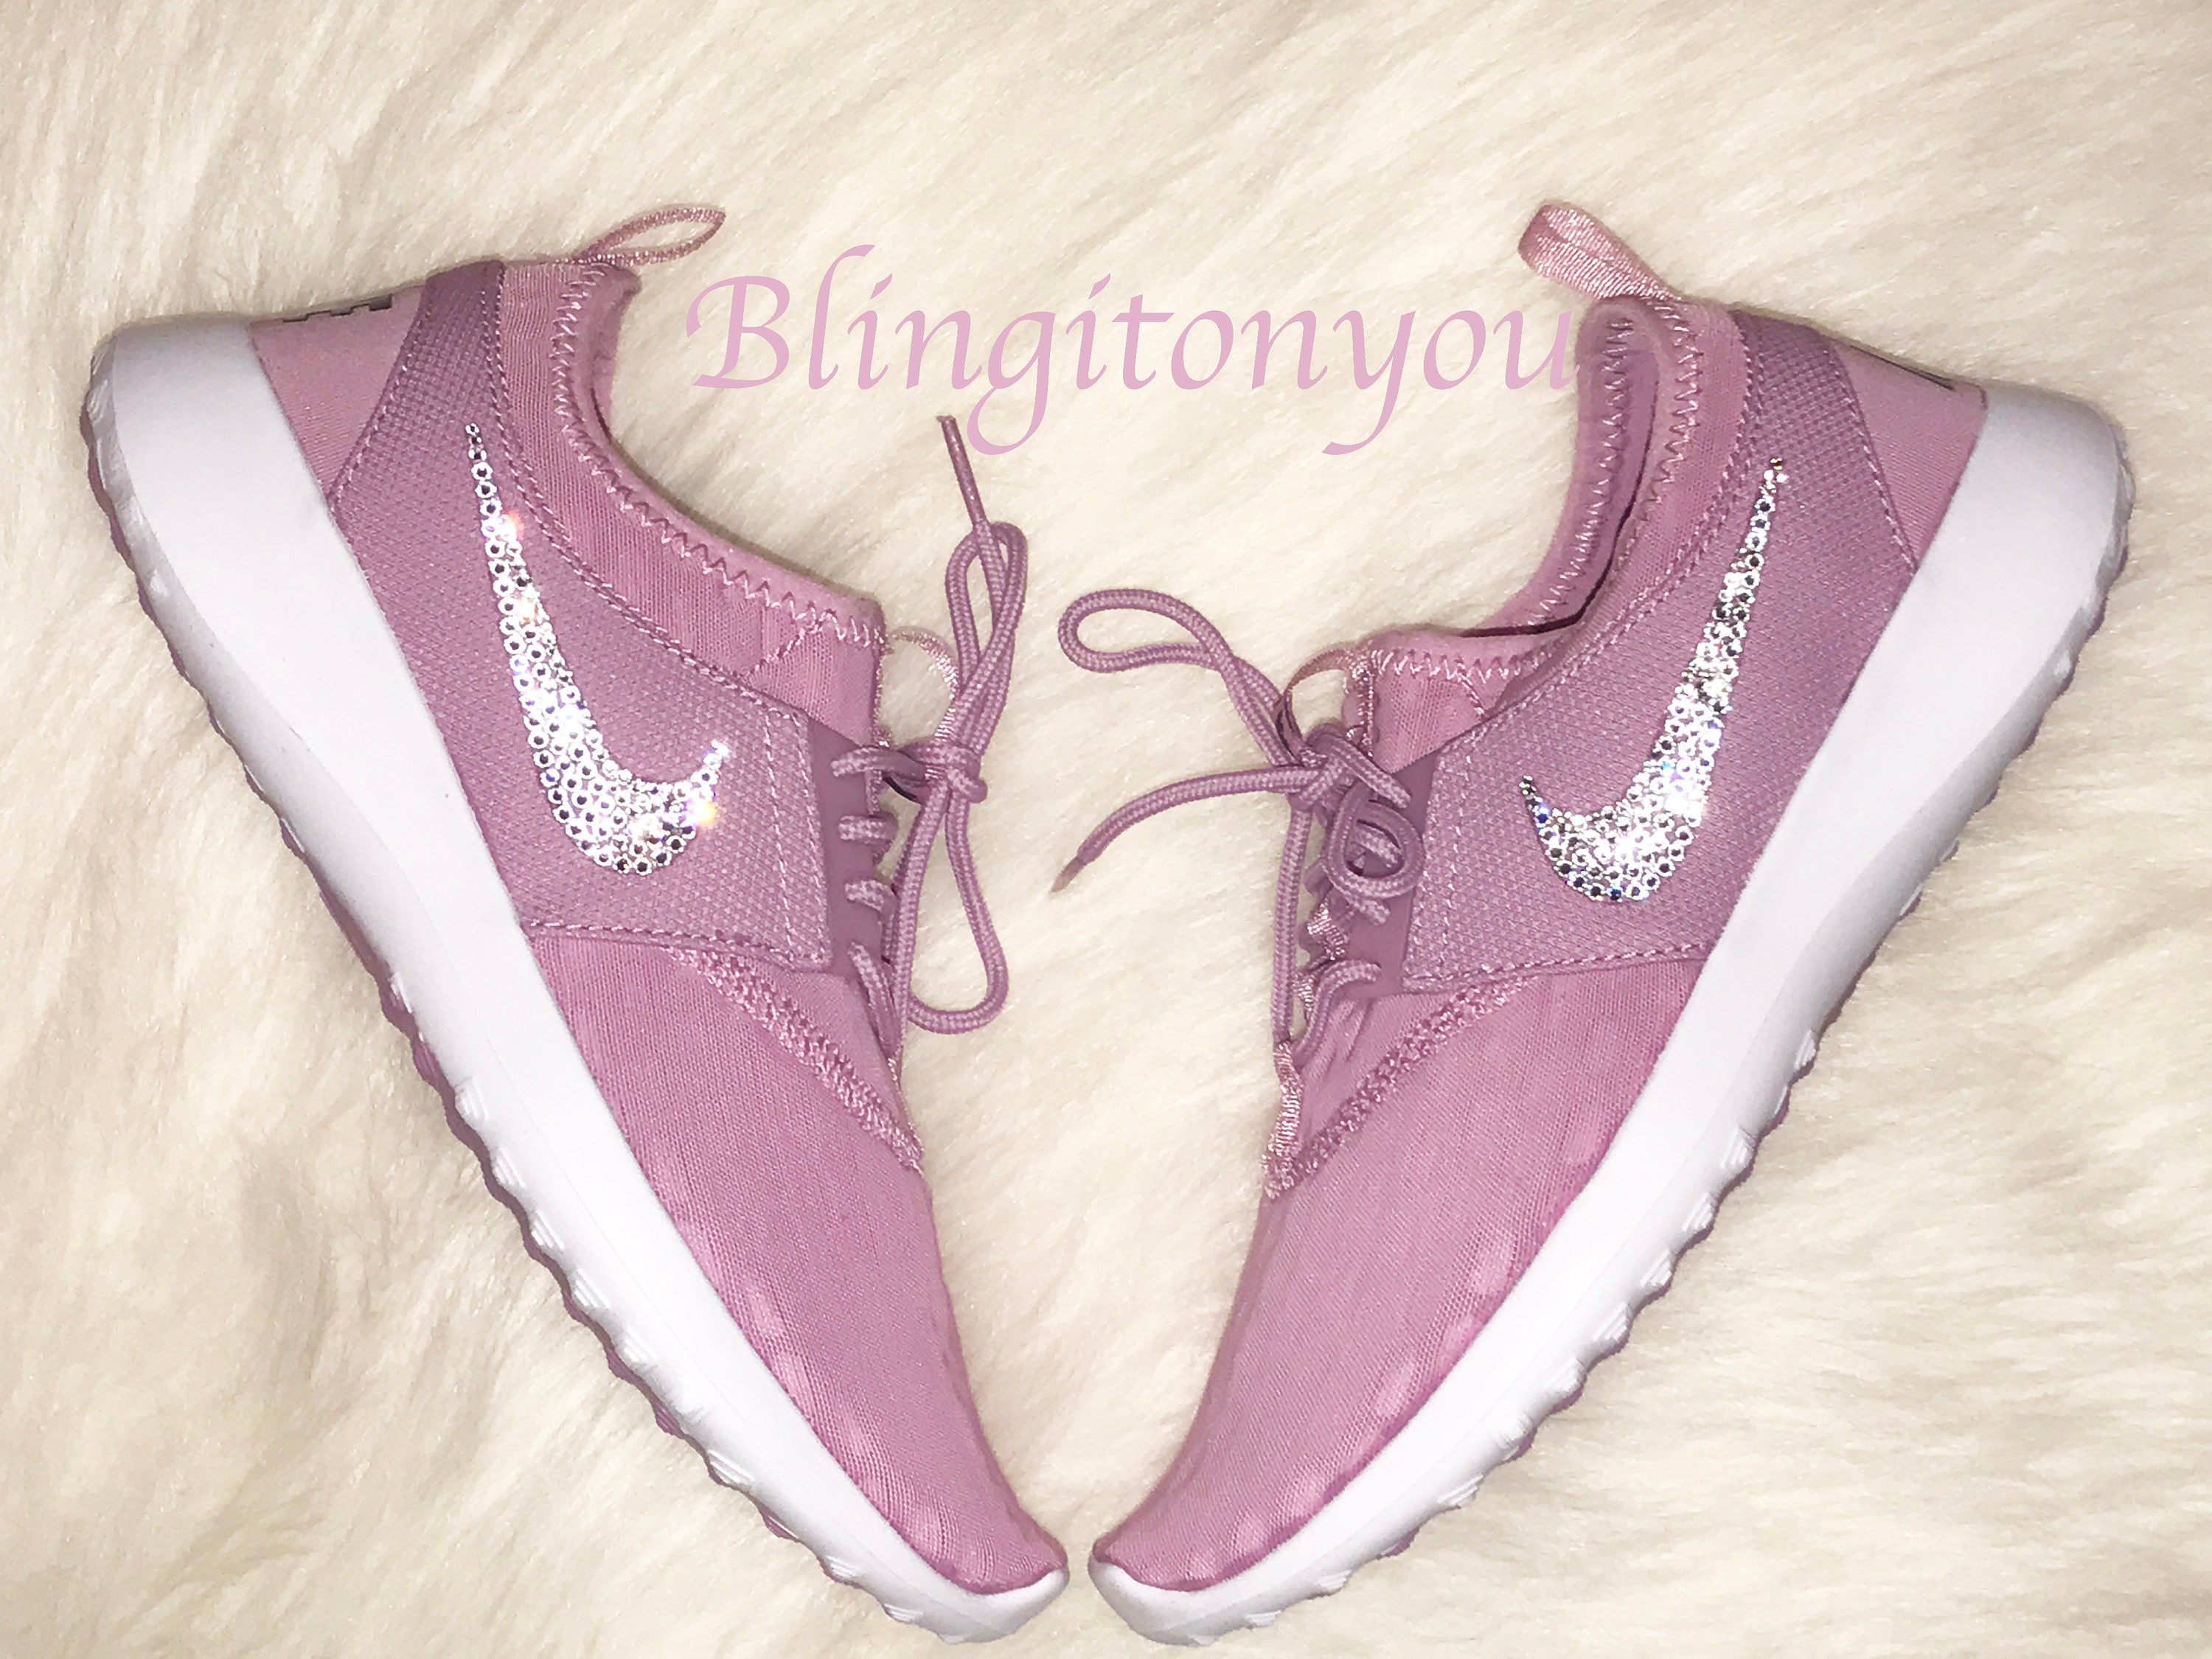 new style da1ce 25f3d LAST PAIR 2 pairs 6.5 Nike US Women s Juvenate Shoes   Etsy